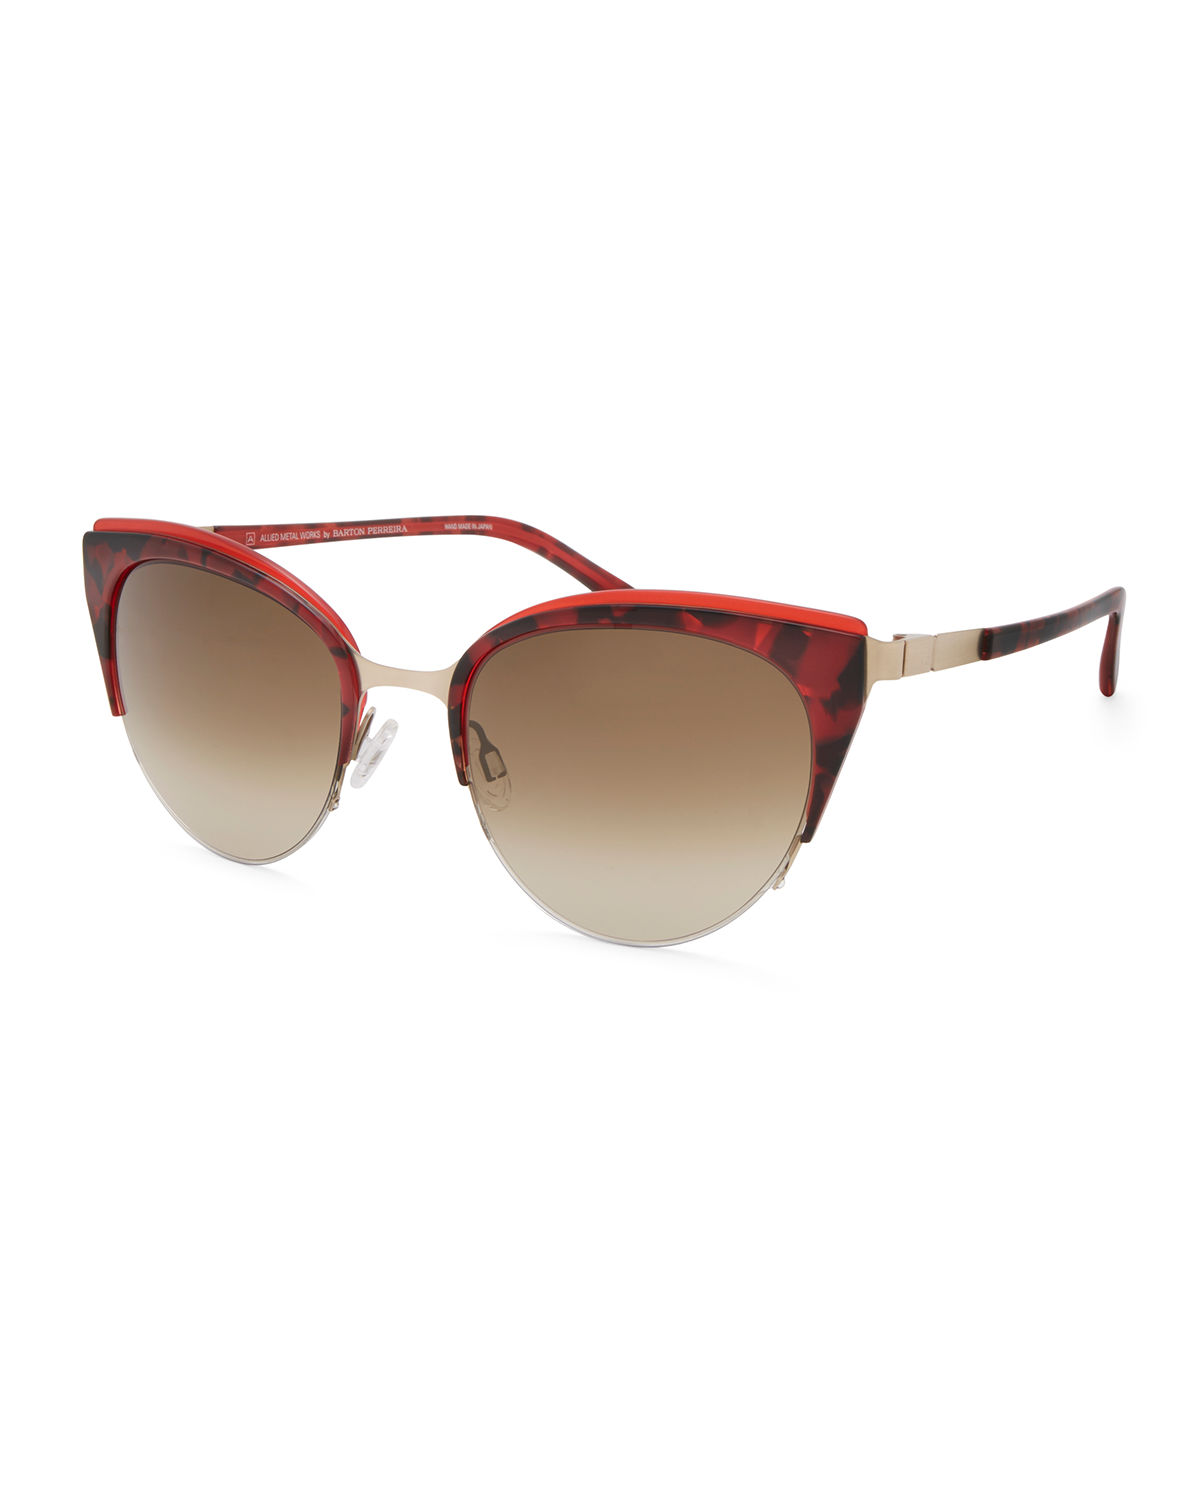 Barton Perreira TANAQUIL STAINLESS STEEL CAT-EYE SUNGLASSES